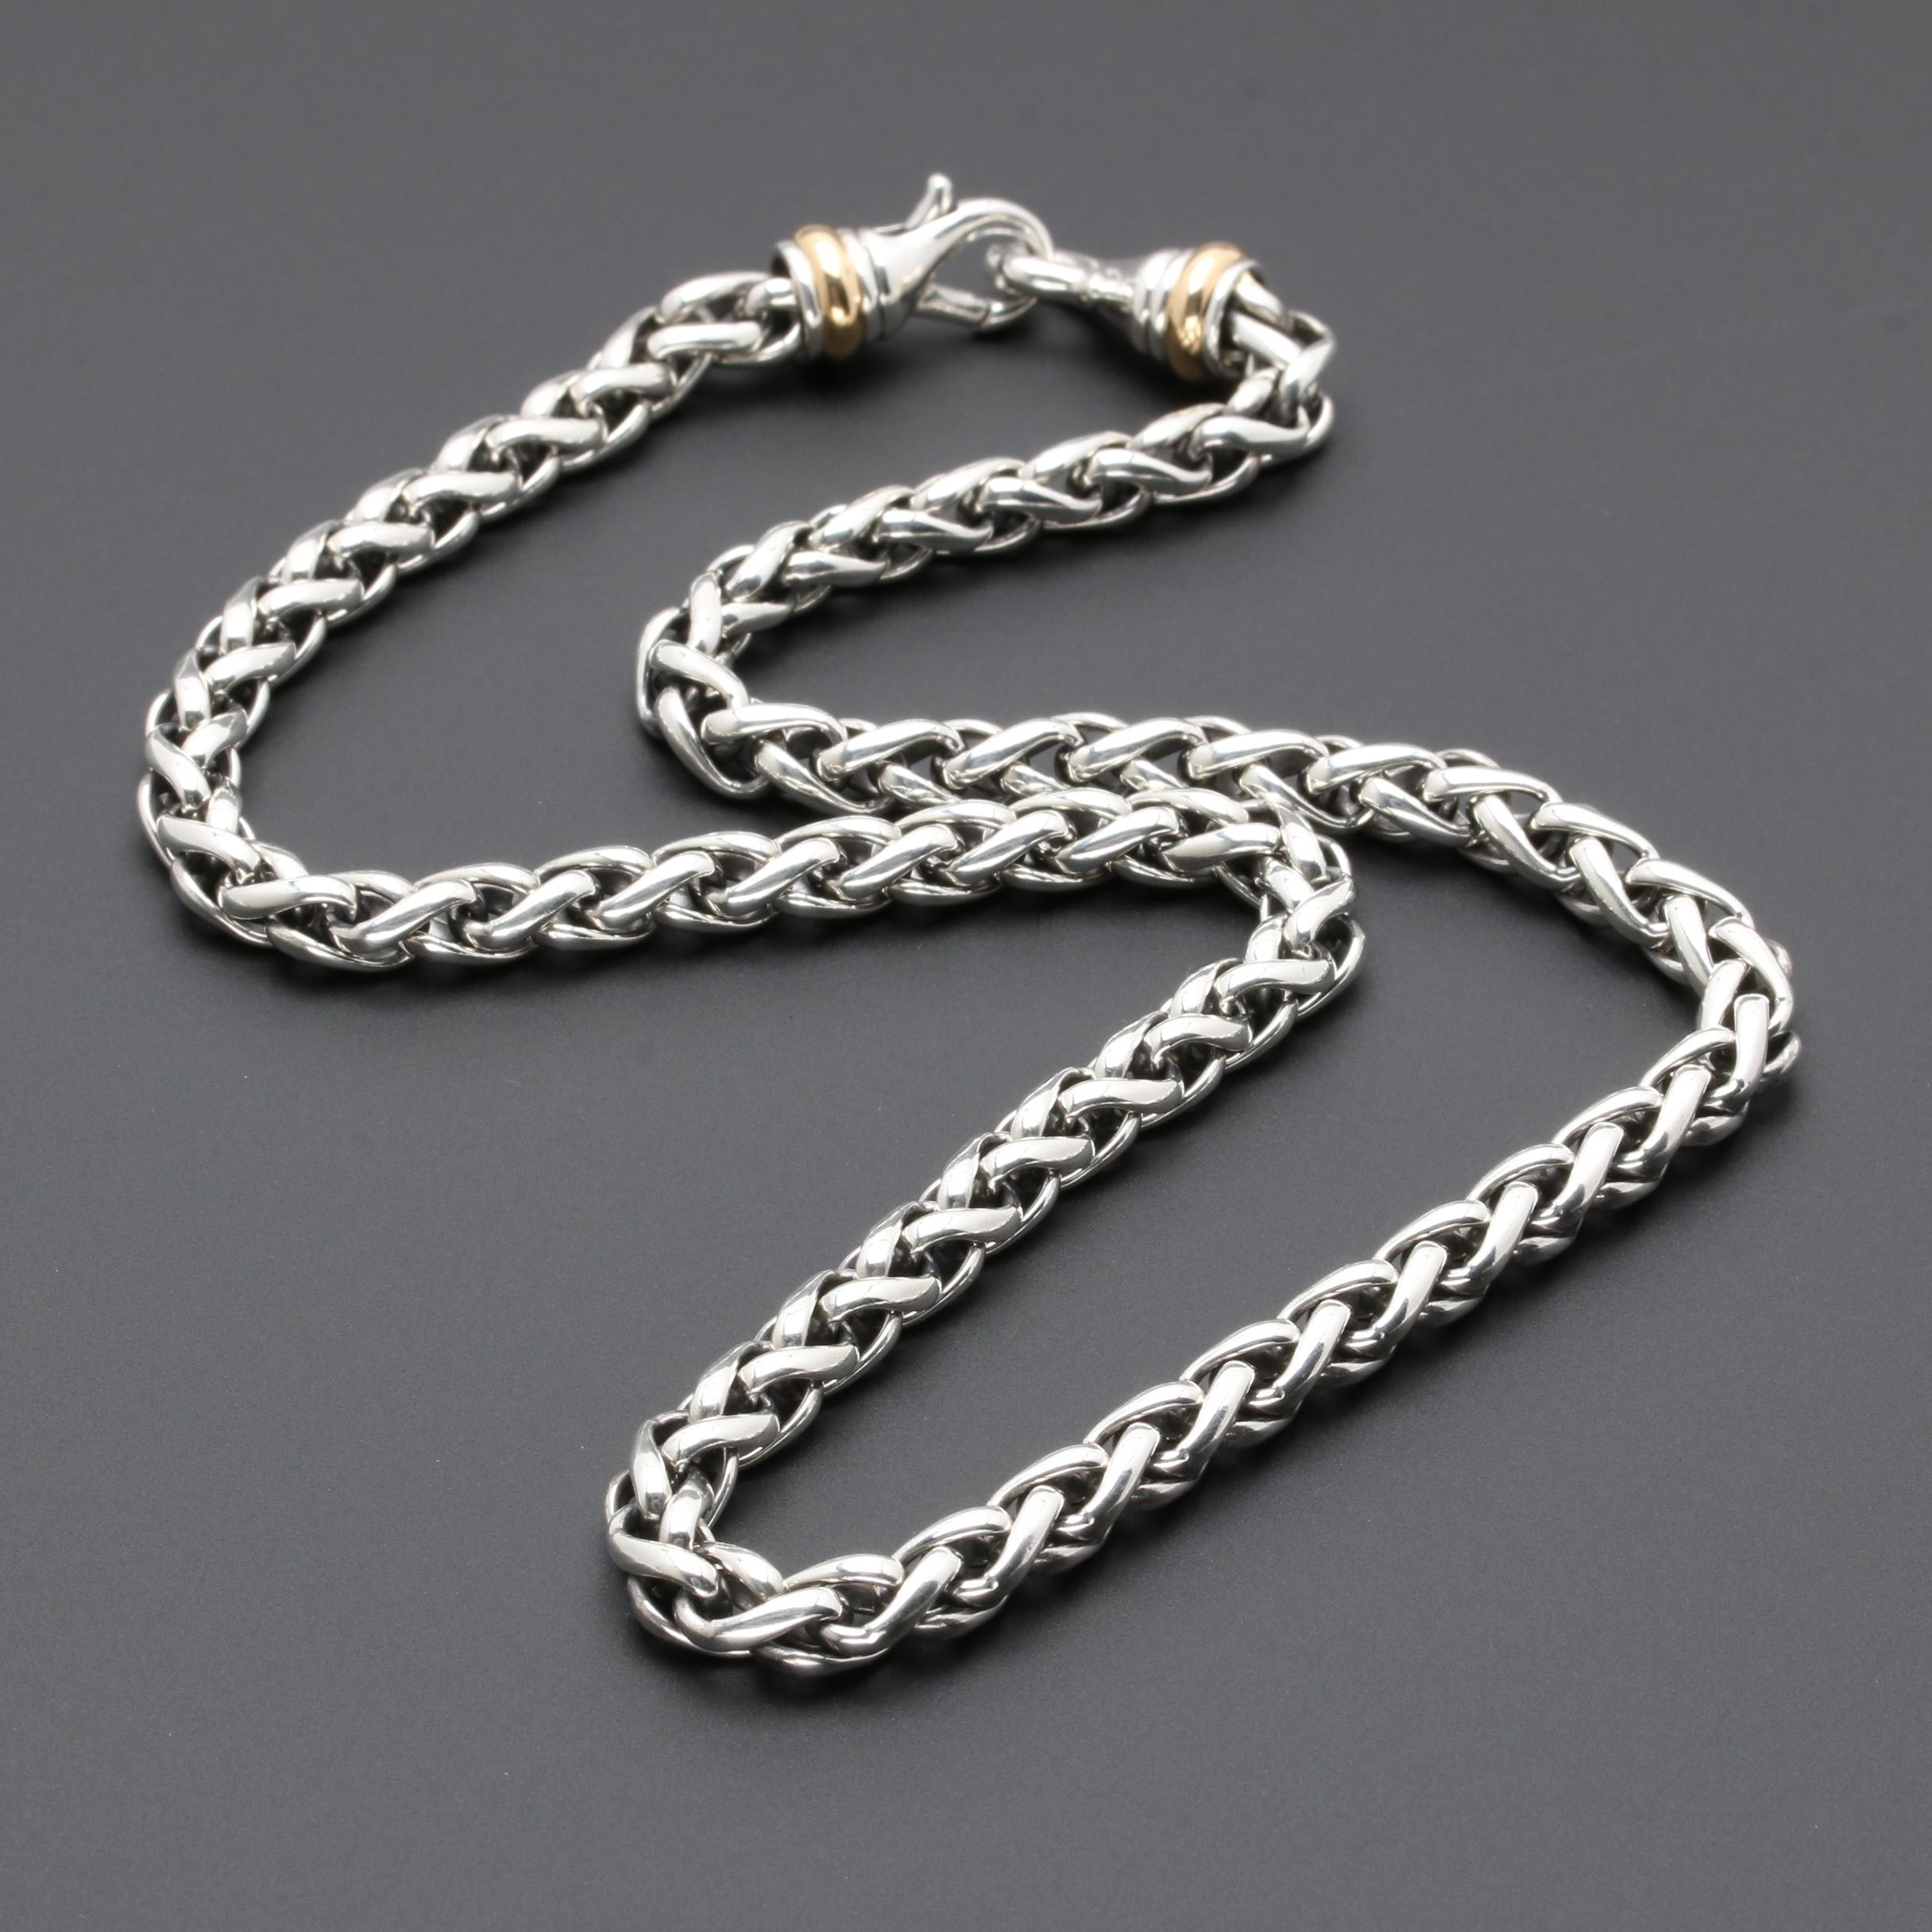 David Yurman Sterling Silver Wheat Chain Necklace with 18K Yellow Gold Accents